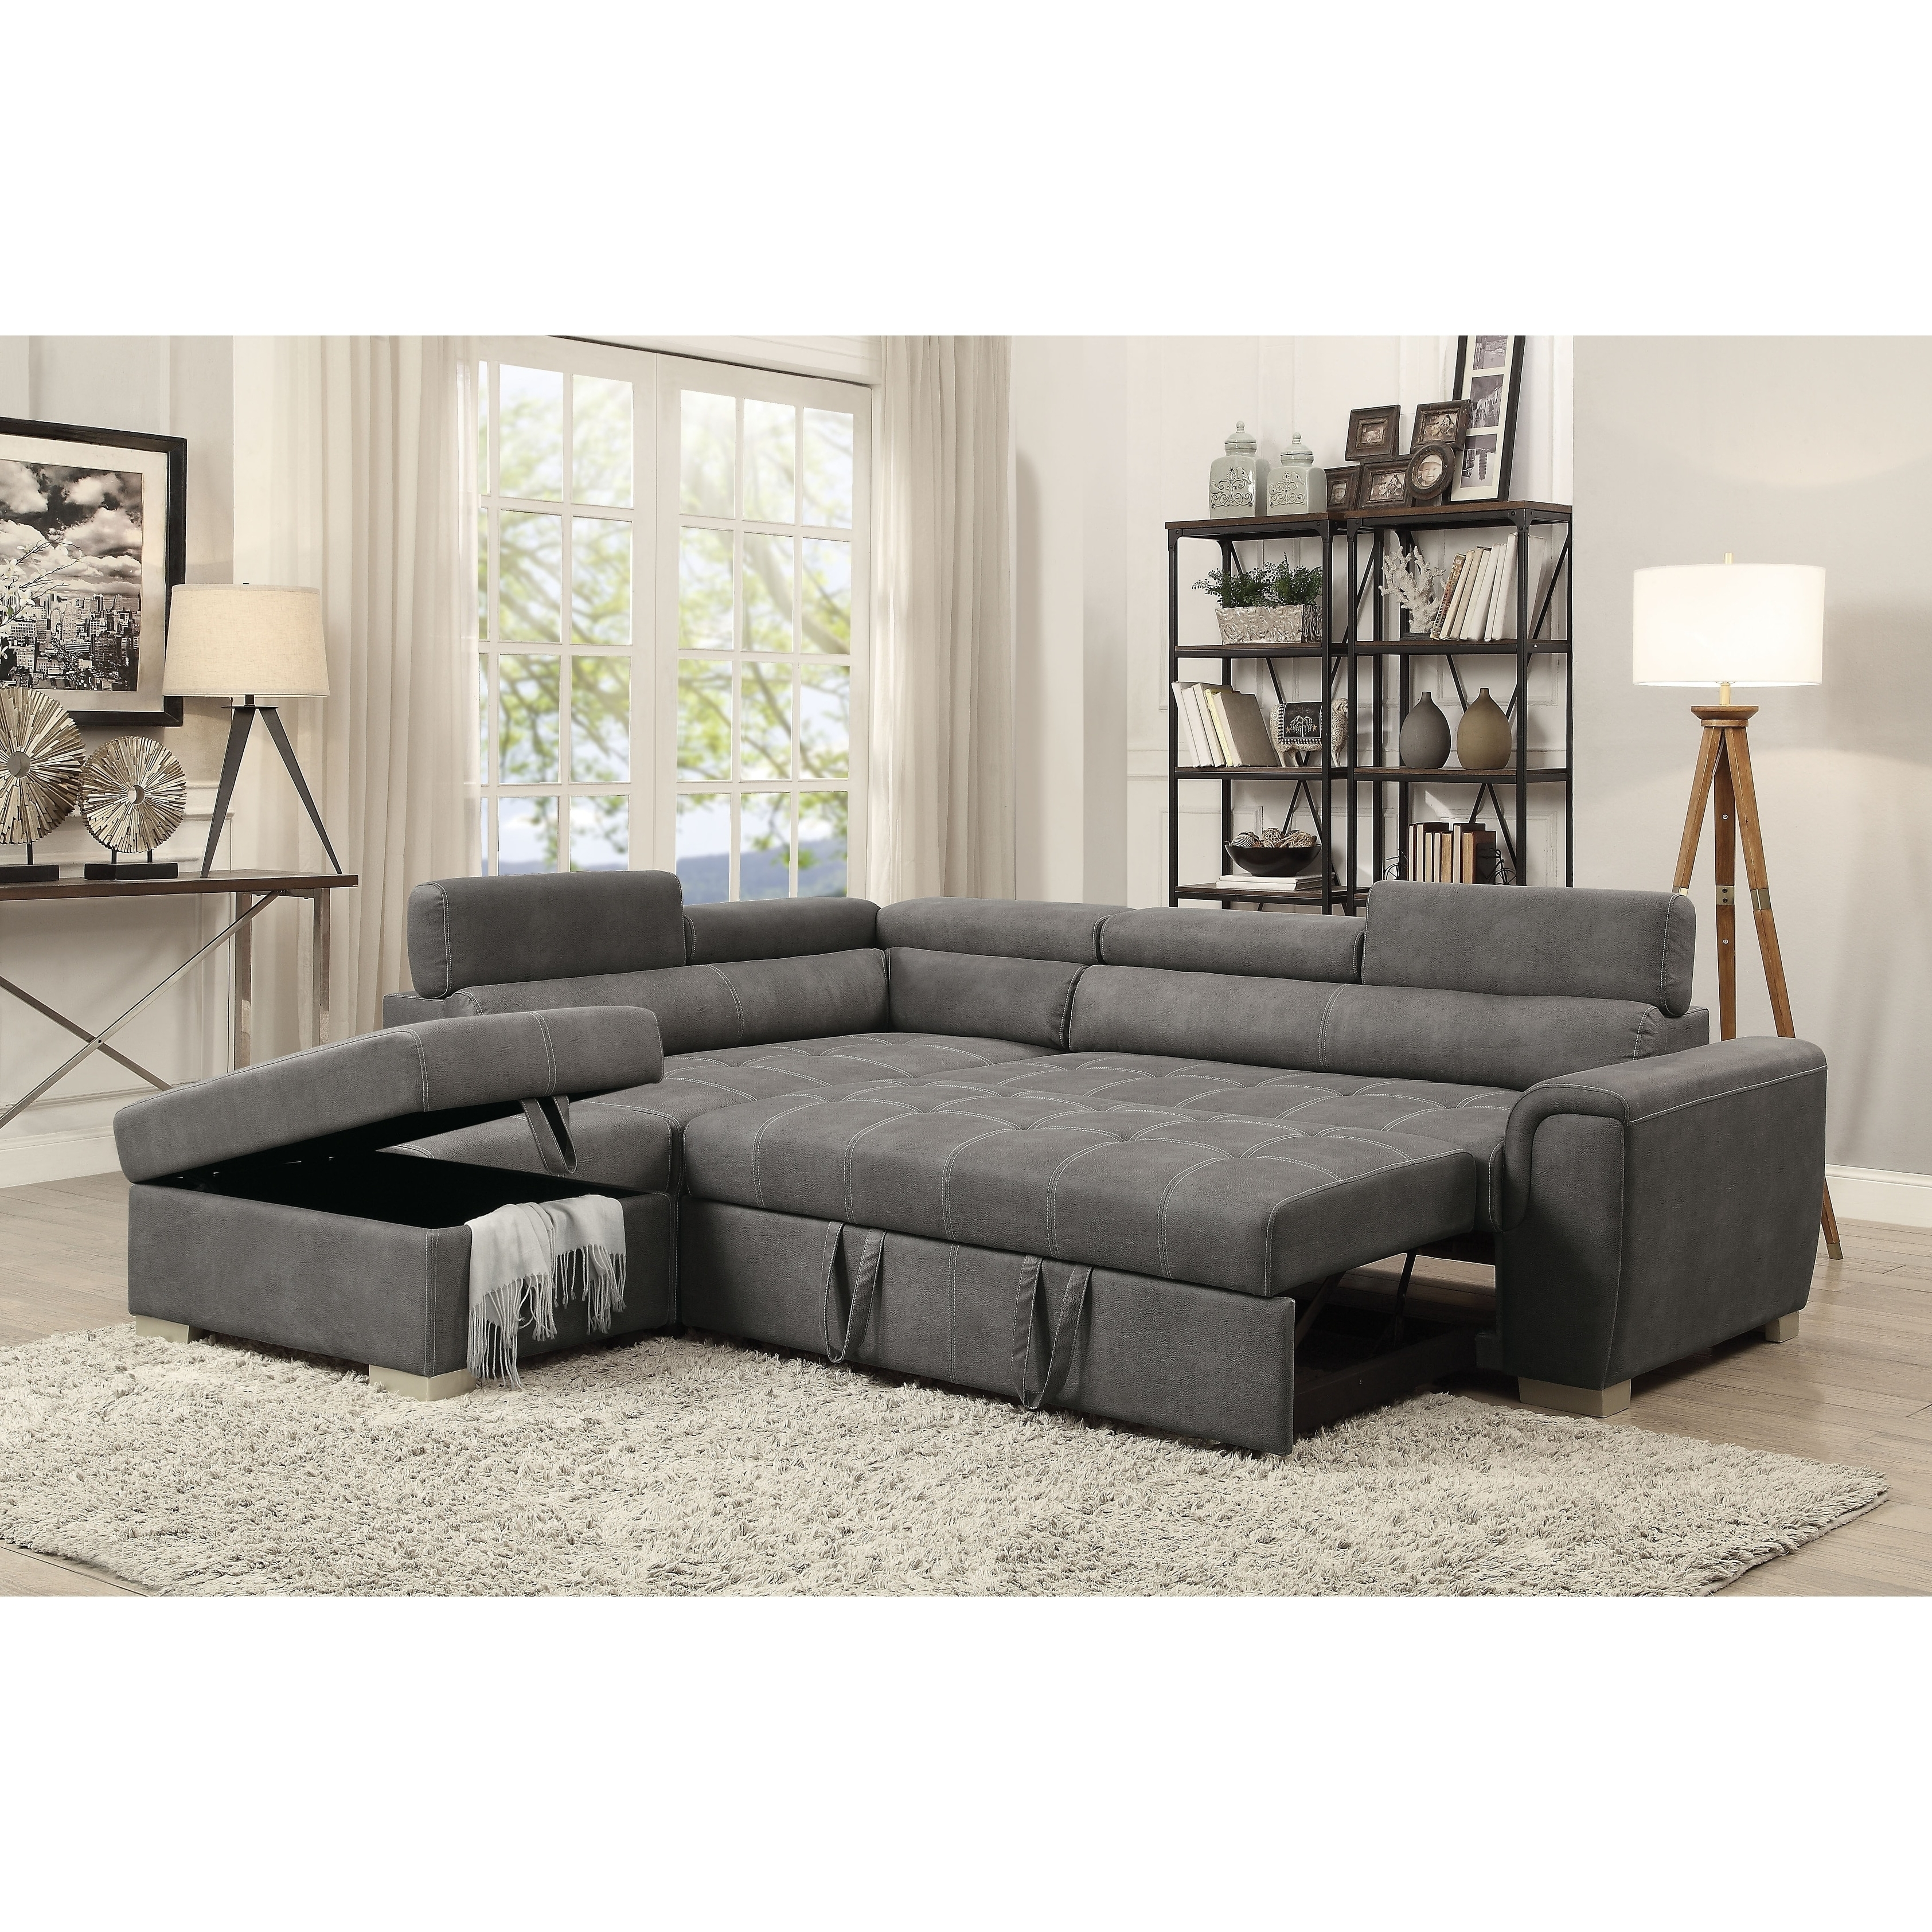 Most Recently Released Acme Thelma Grey Microfiber L Shaped Sectional Sofa With Sleeper Inside Sofas With Chaise And Ottoman (View 16 of 20)